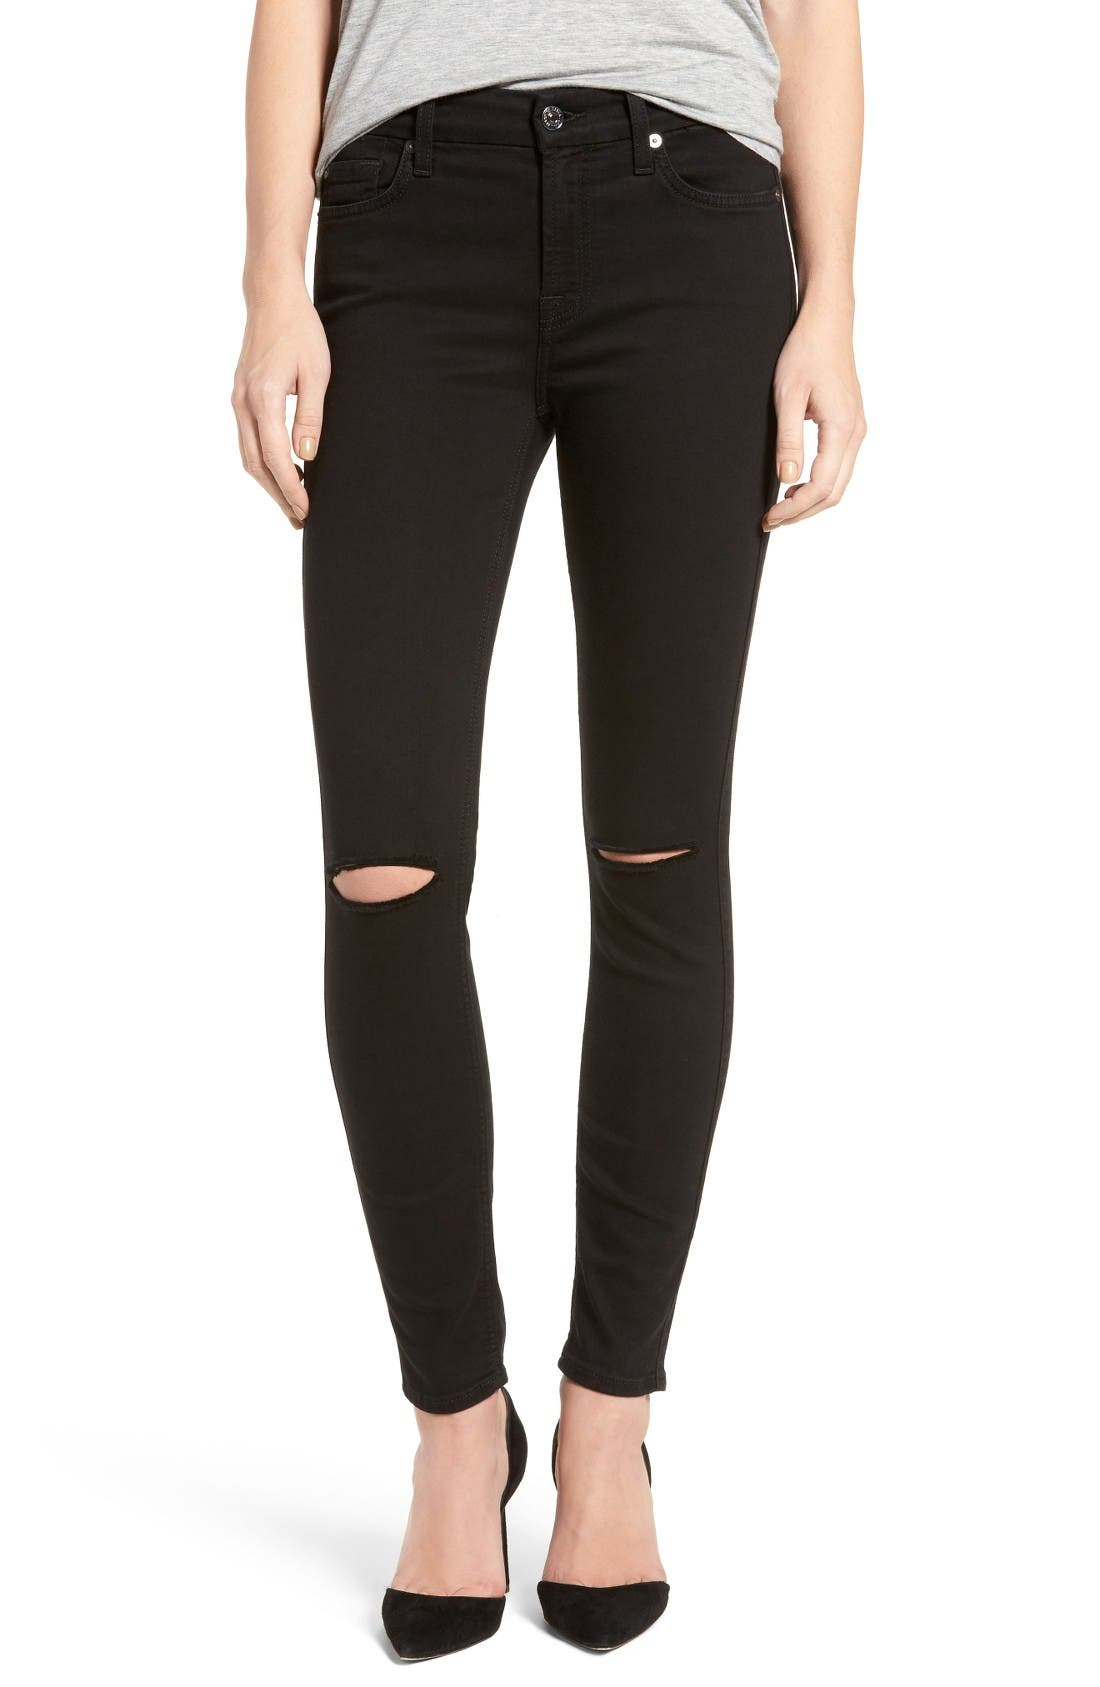 'b(air)' Ankle Skinny Jeans,                             Main thumbnail 1, color,                             Bair Black 2